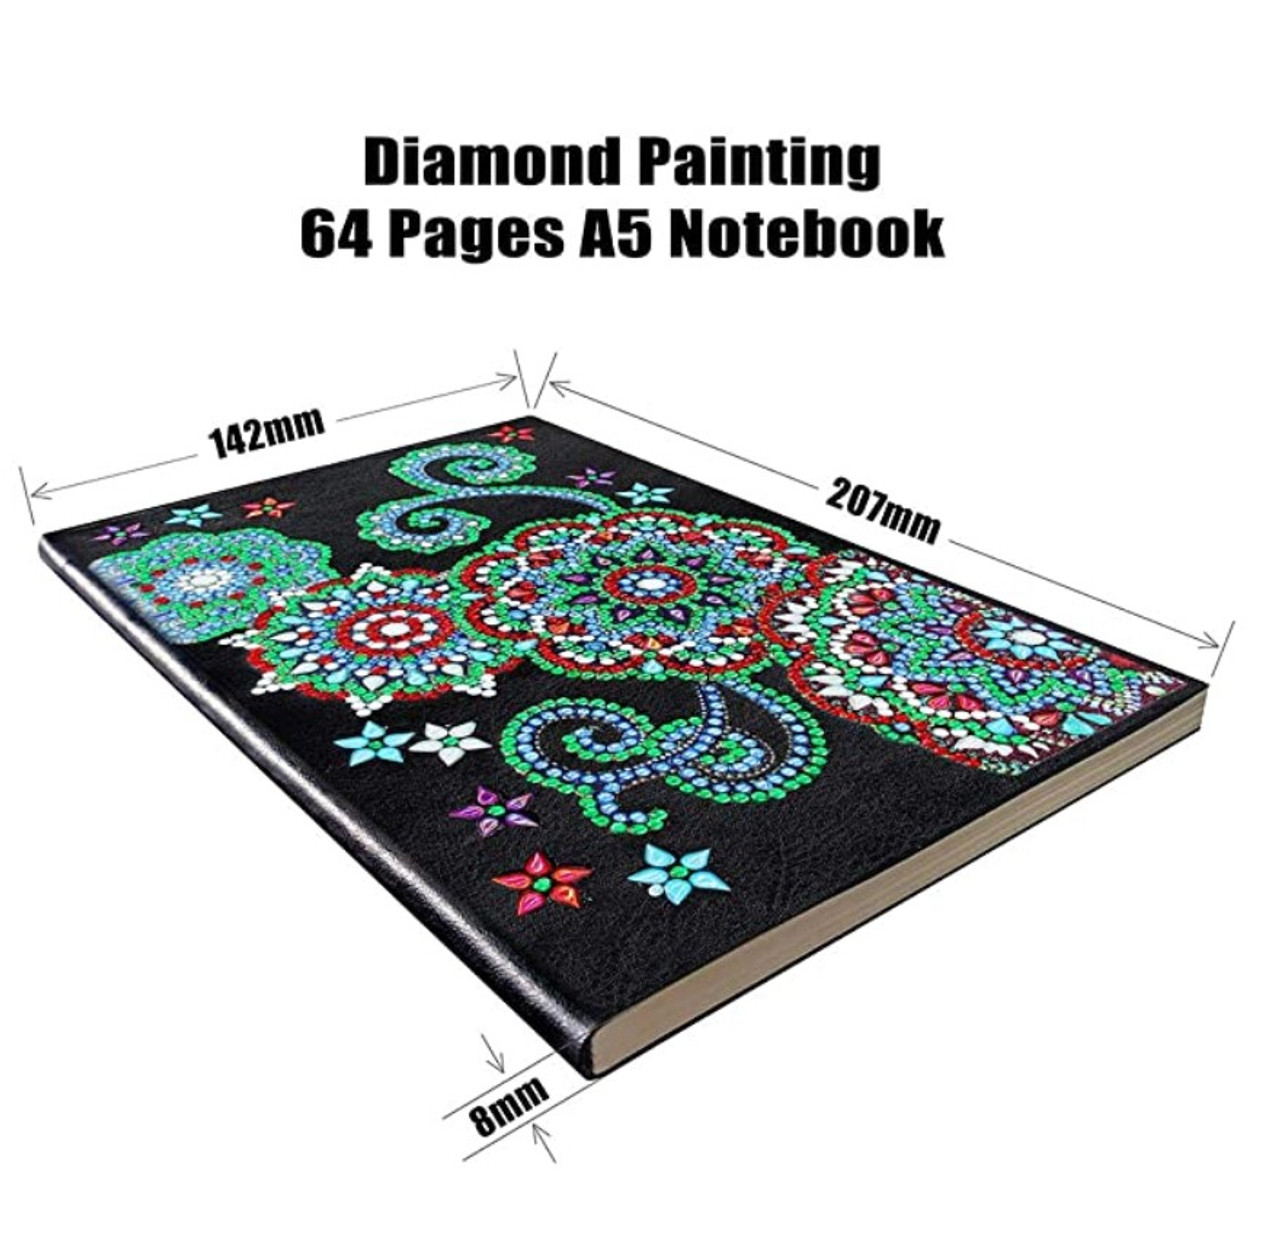 5D DIY Diamond Painting A5 Notebook NB52